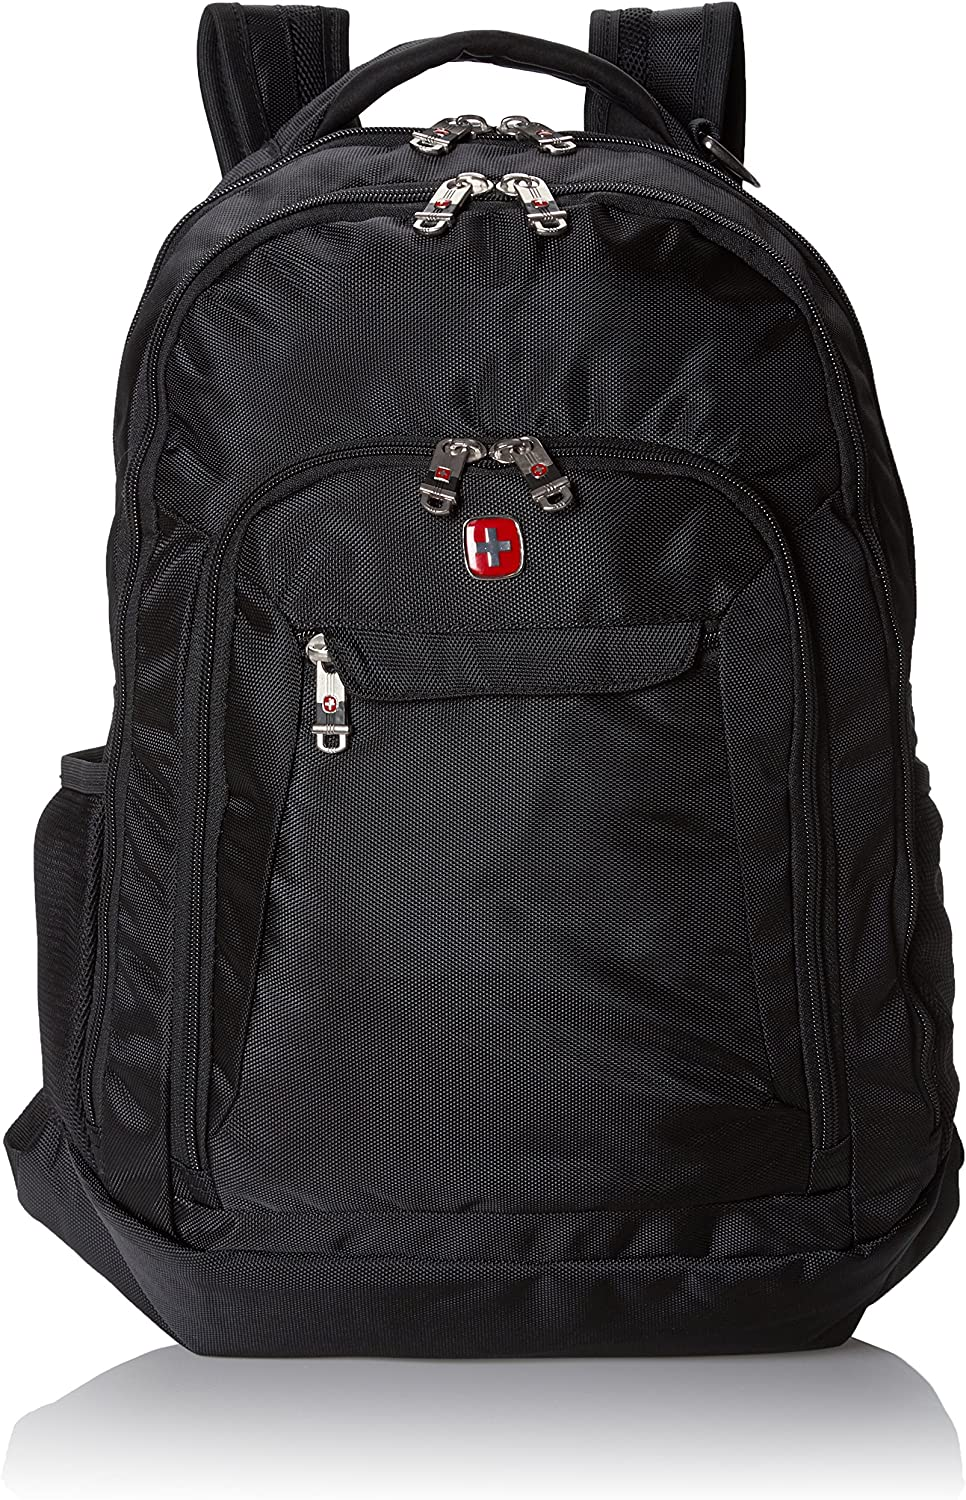 Swiss Gear SA9998 Black Laptop Backpack - Fits Most 15 Inch Laptops and Tablets